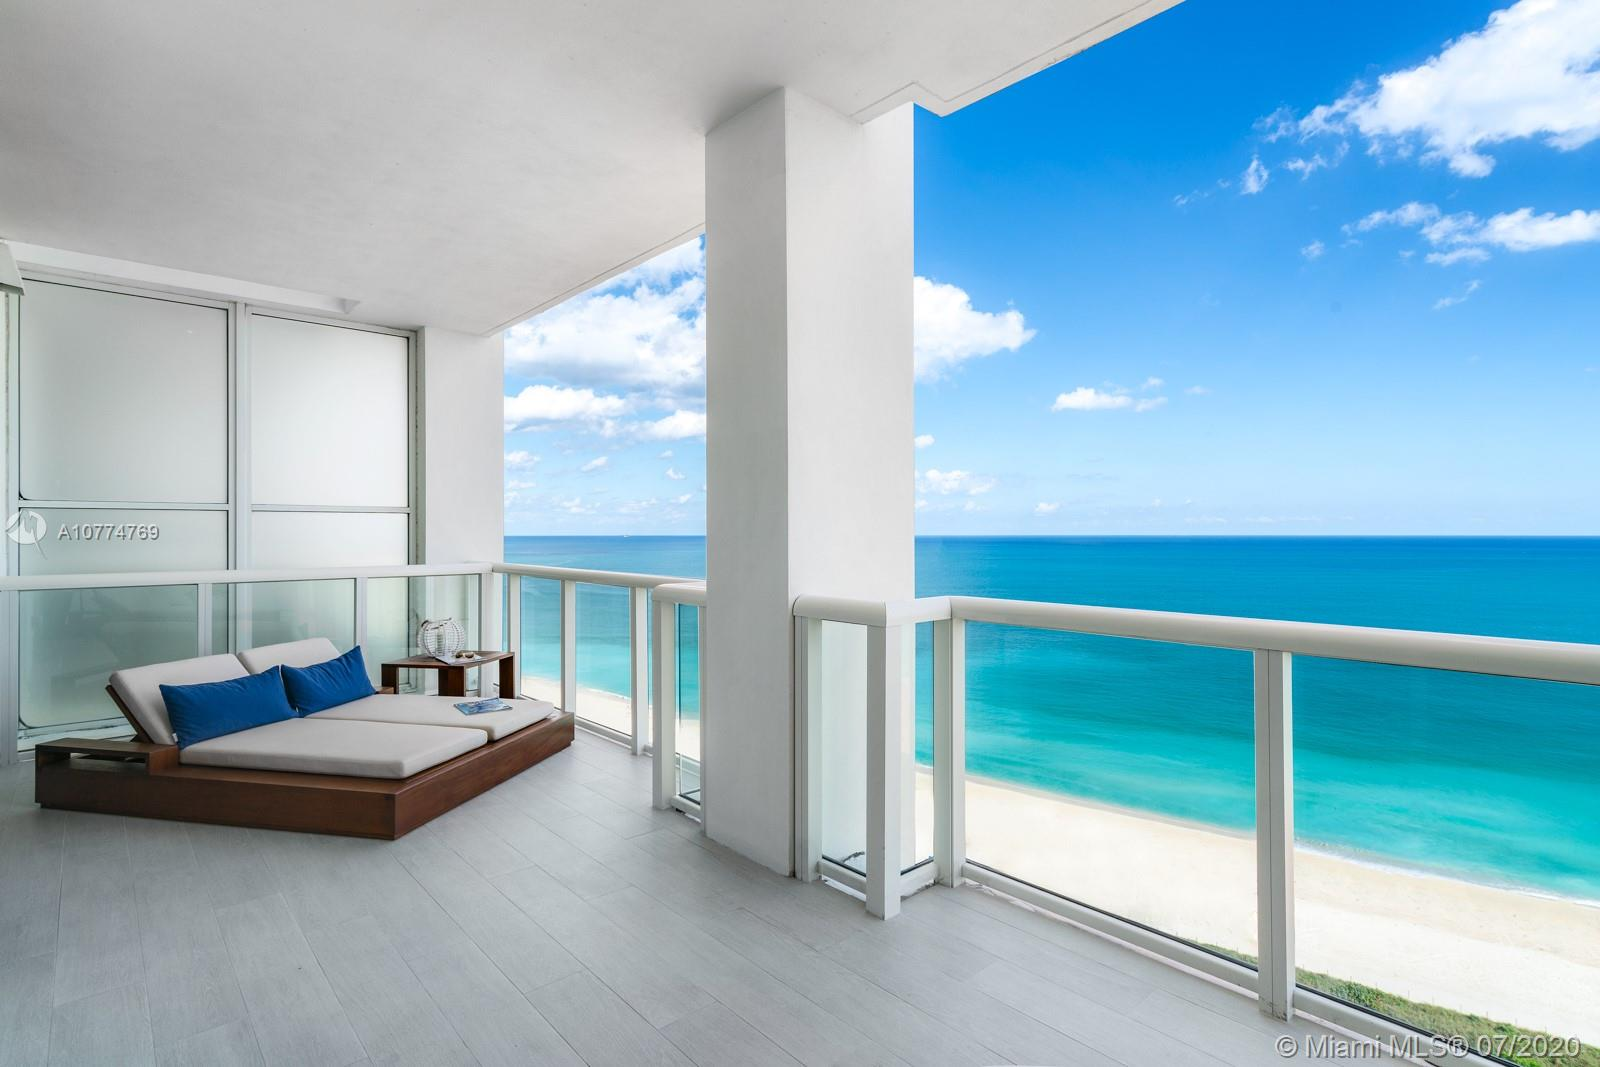 50 Pointe Dr Unit 2502, Miami Beach, Florida 33139